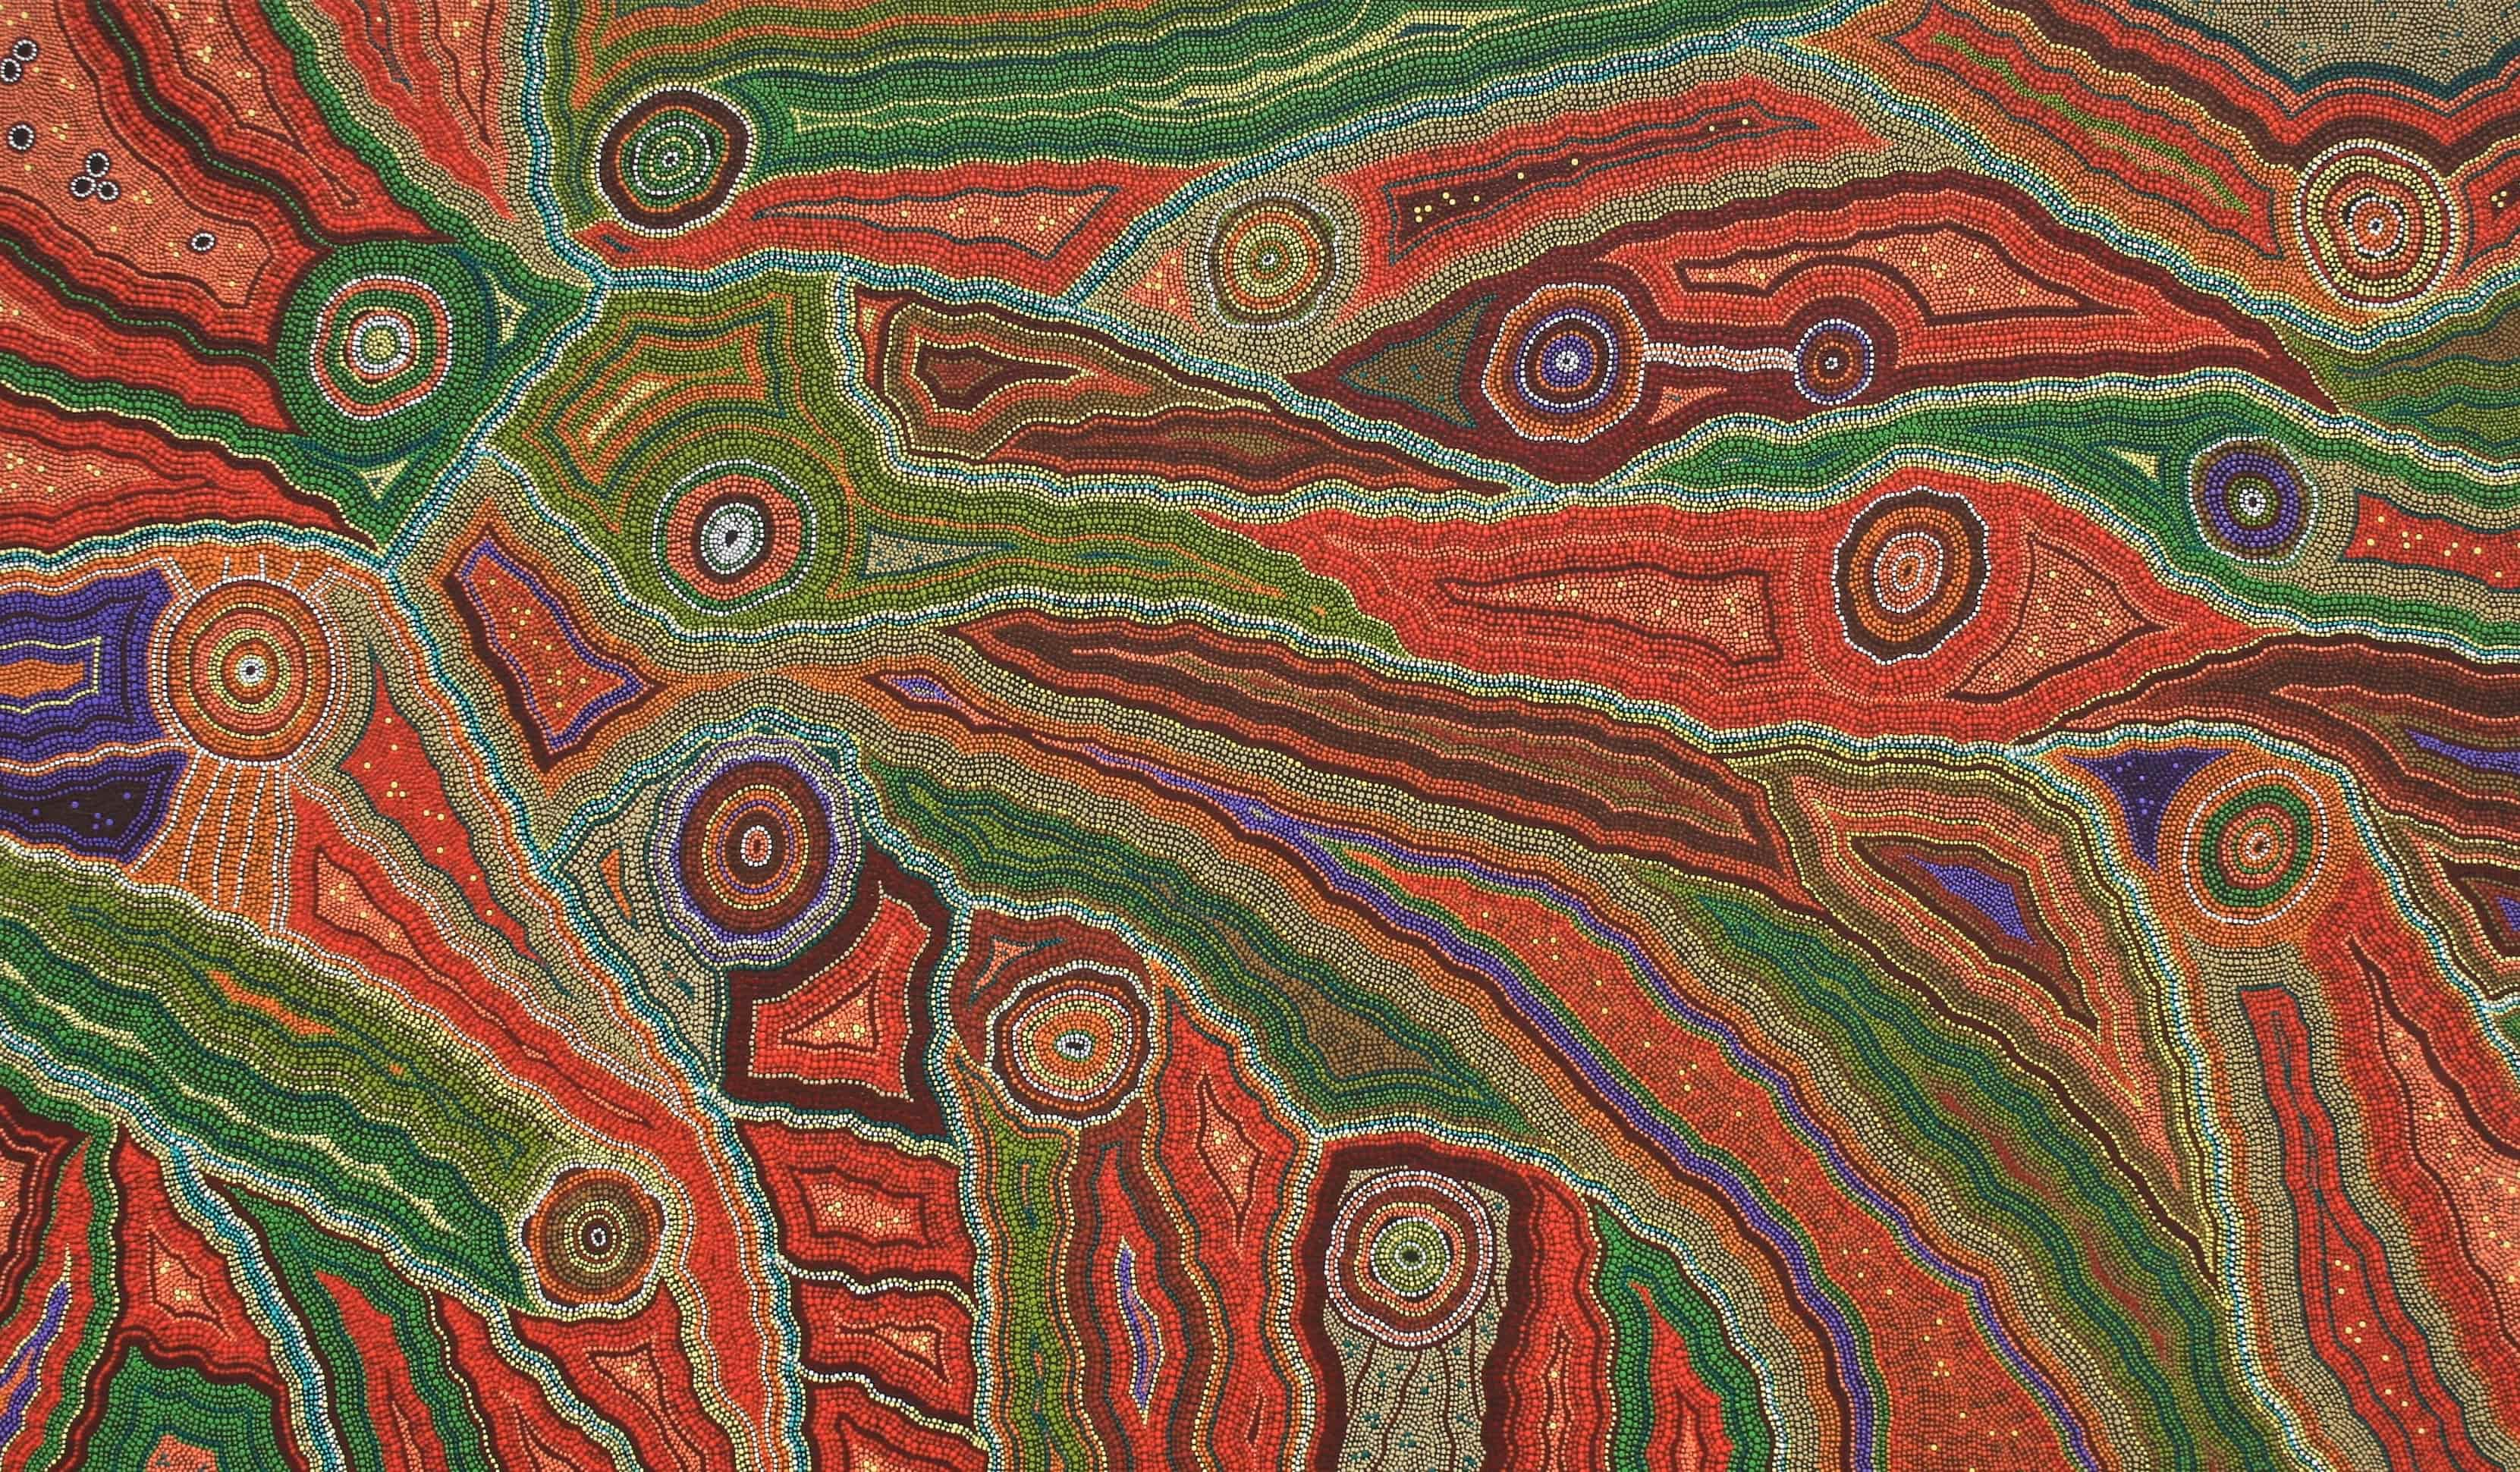 local aboriginal artwork - Gamilaraay